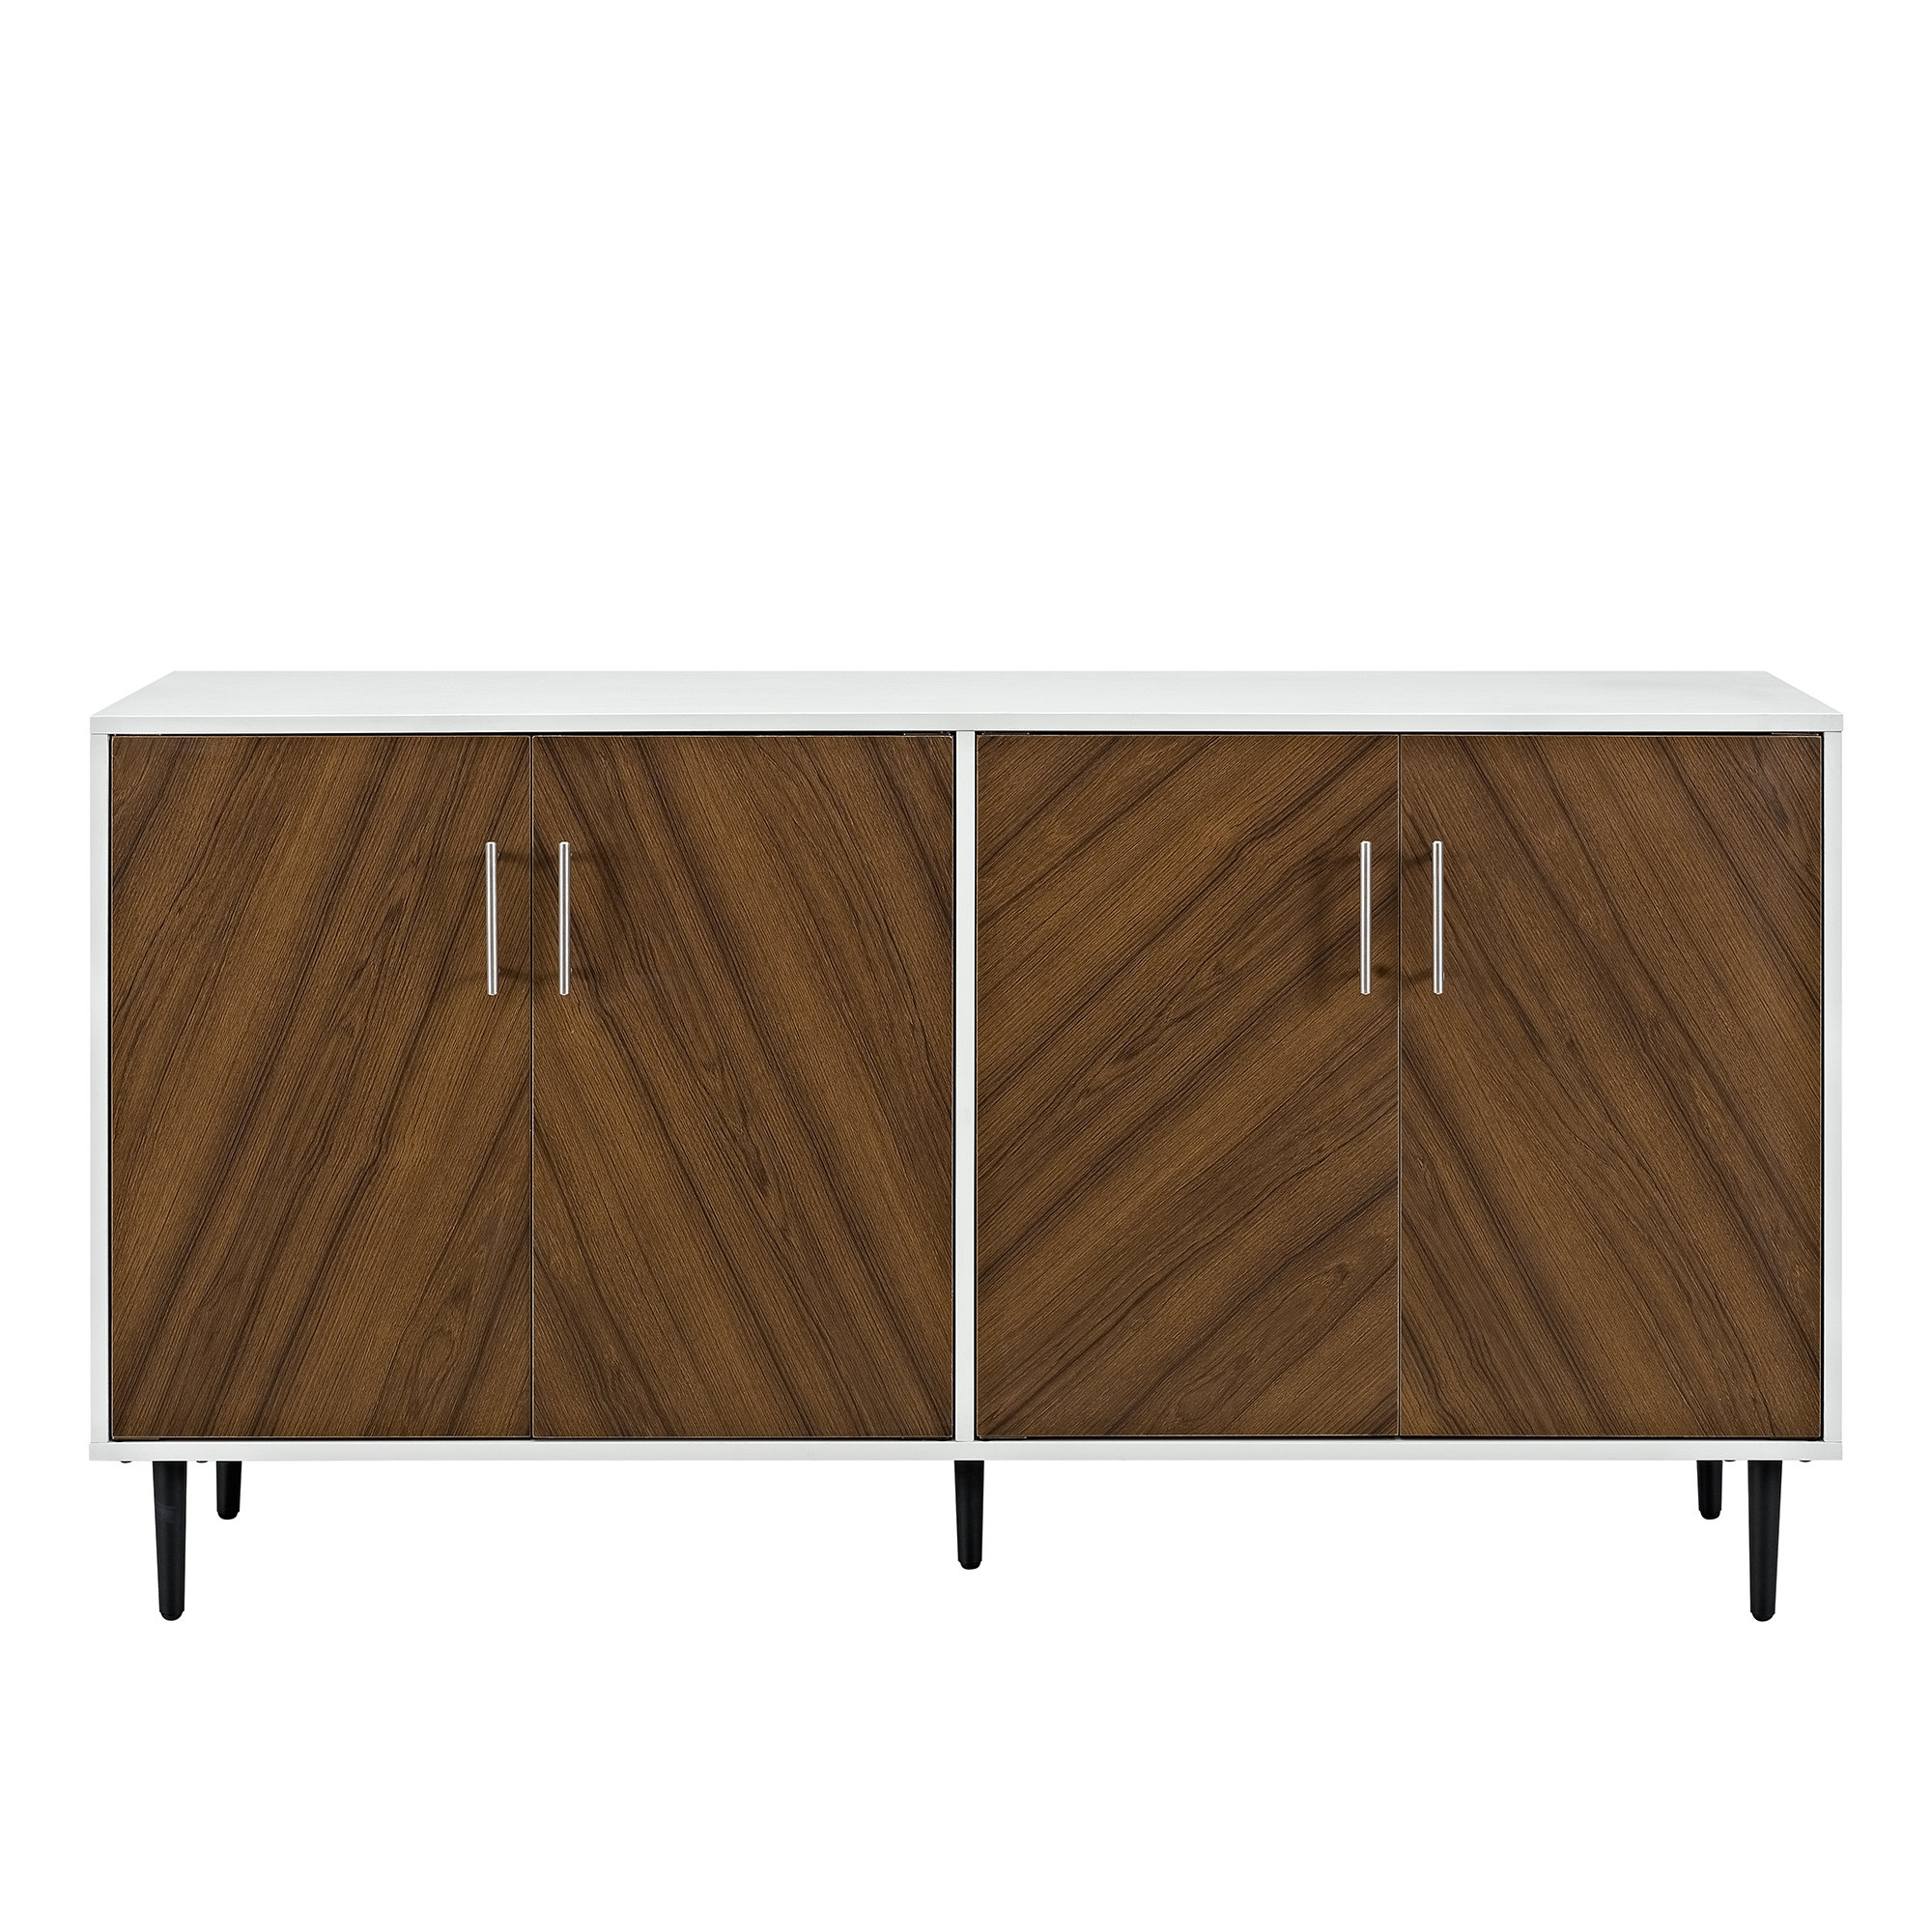 Modern White Sideboards + Buffets | Allmodern With Regard To 2 Shelf Buffets With Curved Legs (View 22 of 30)